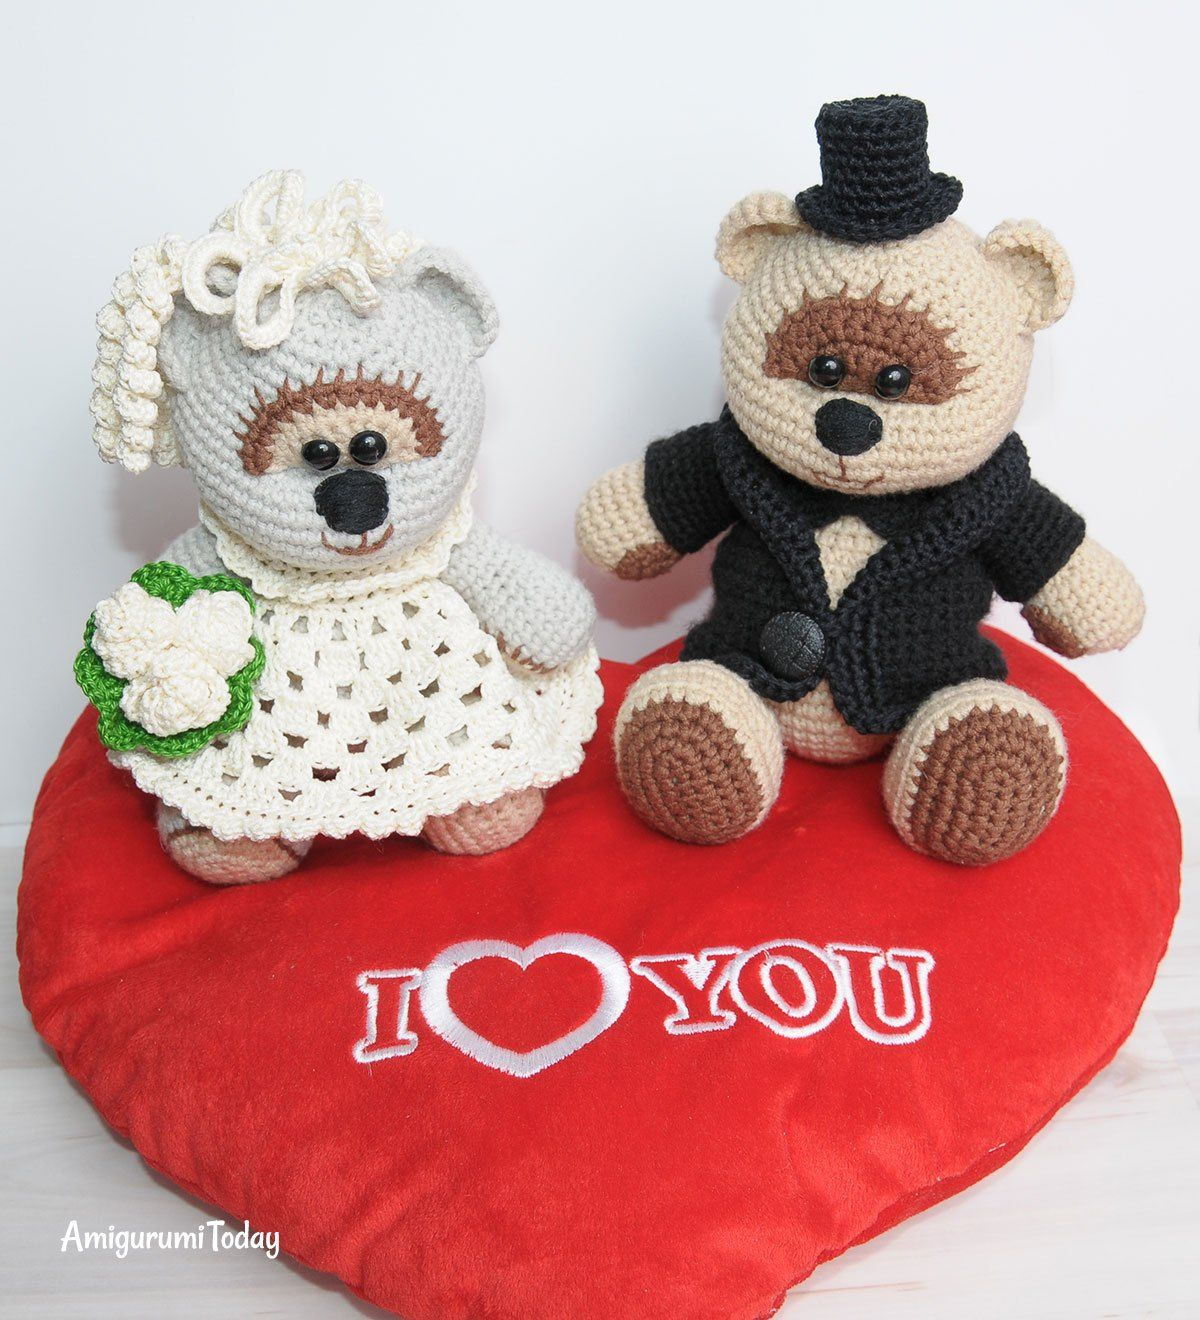 Amigurumi wedding bears: crochet pattern | Pinterest | Amigurumi ...